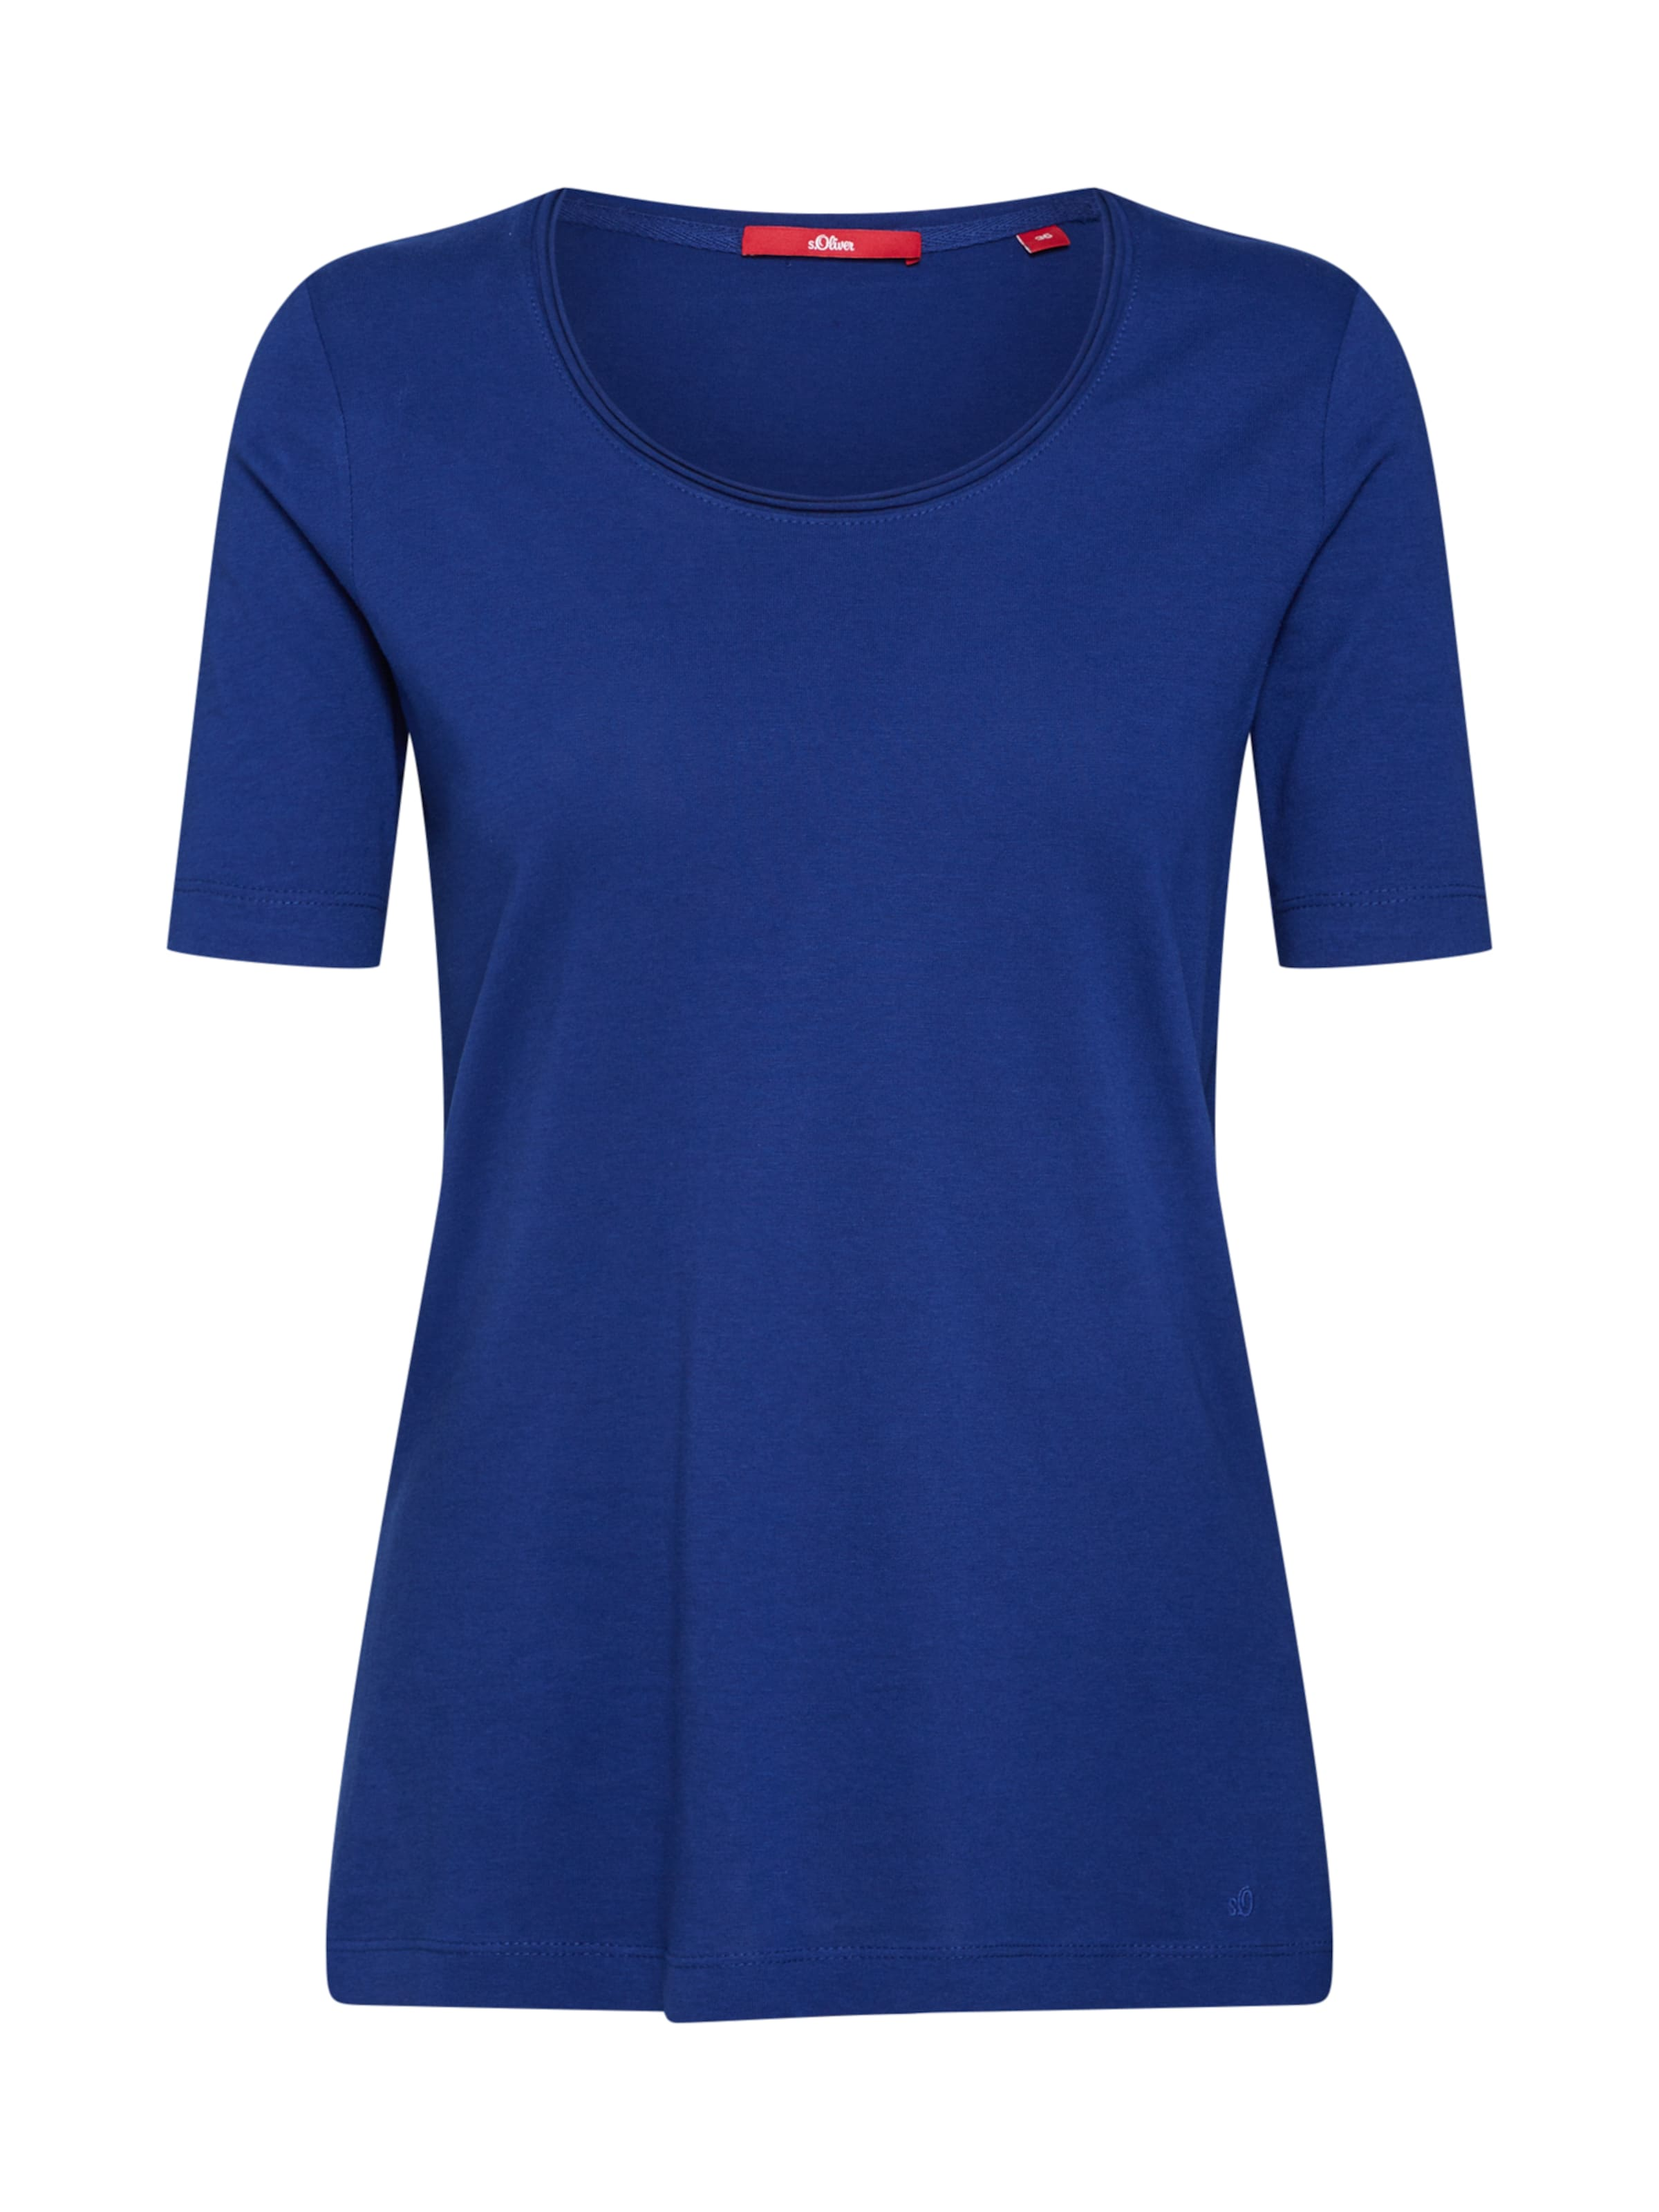 In Label Blau Shirt Red S oliver doEQCerxBW